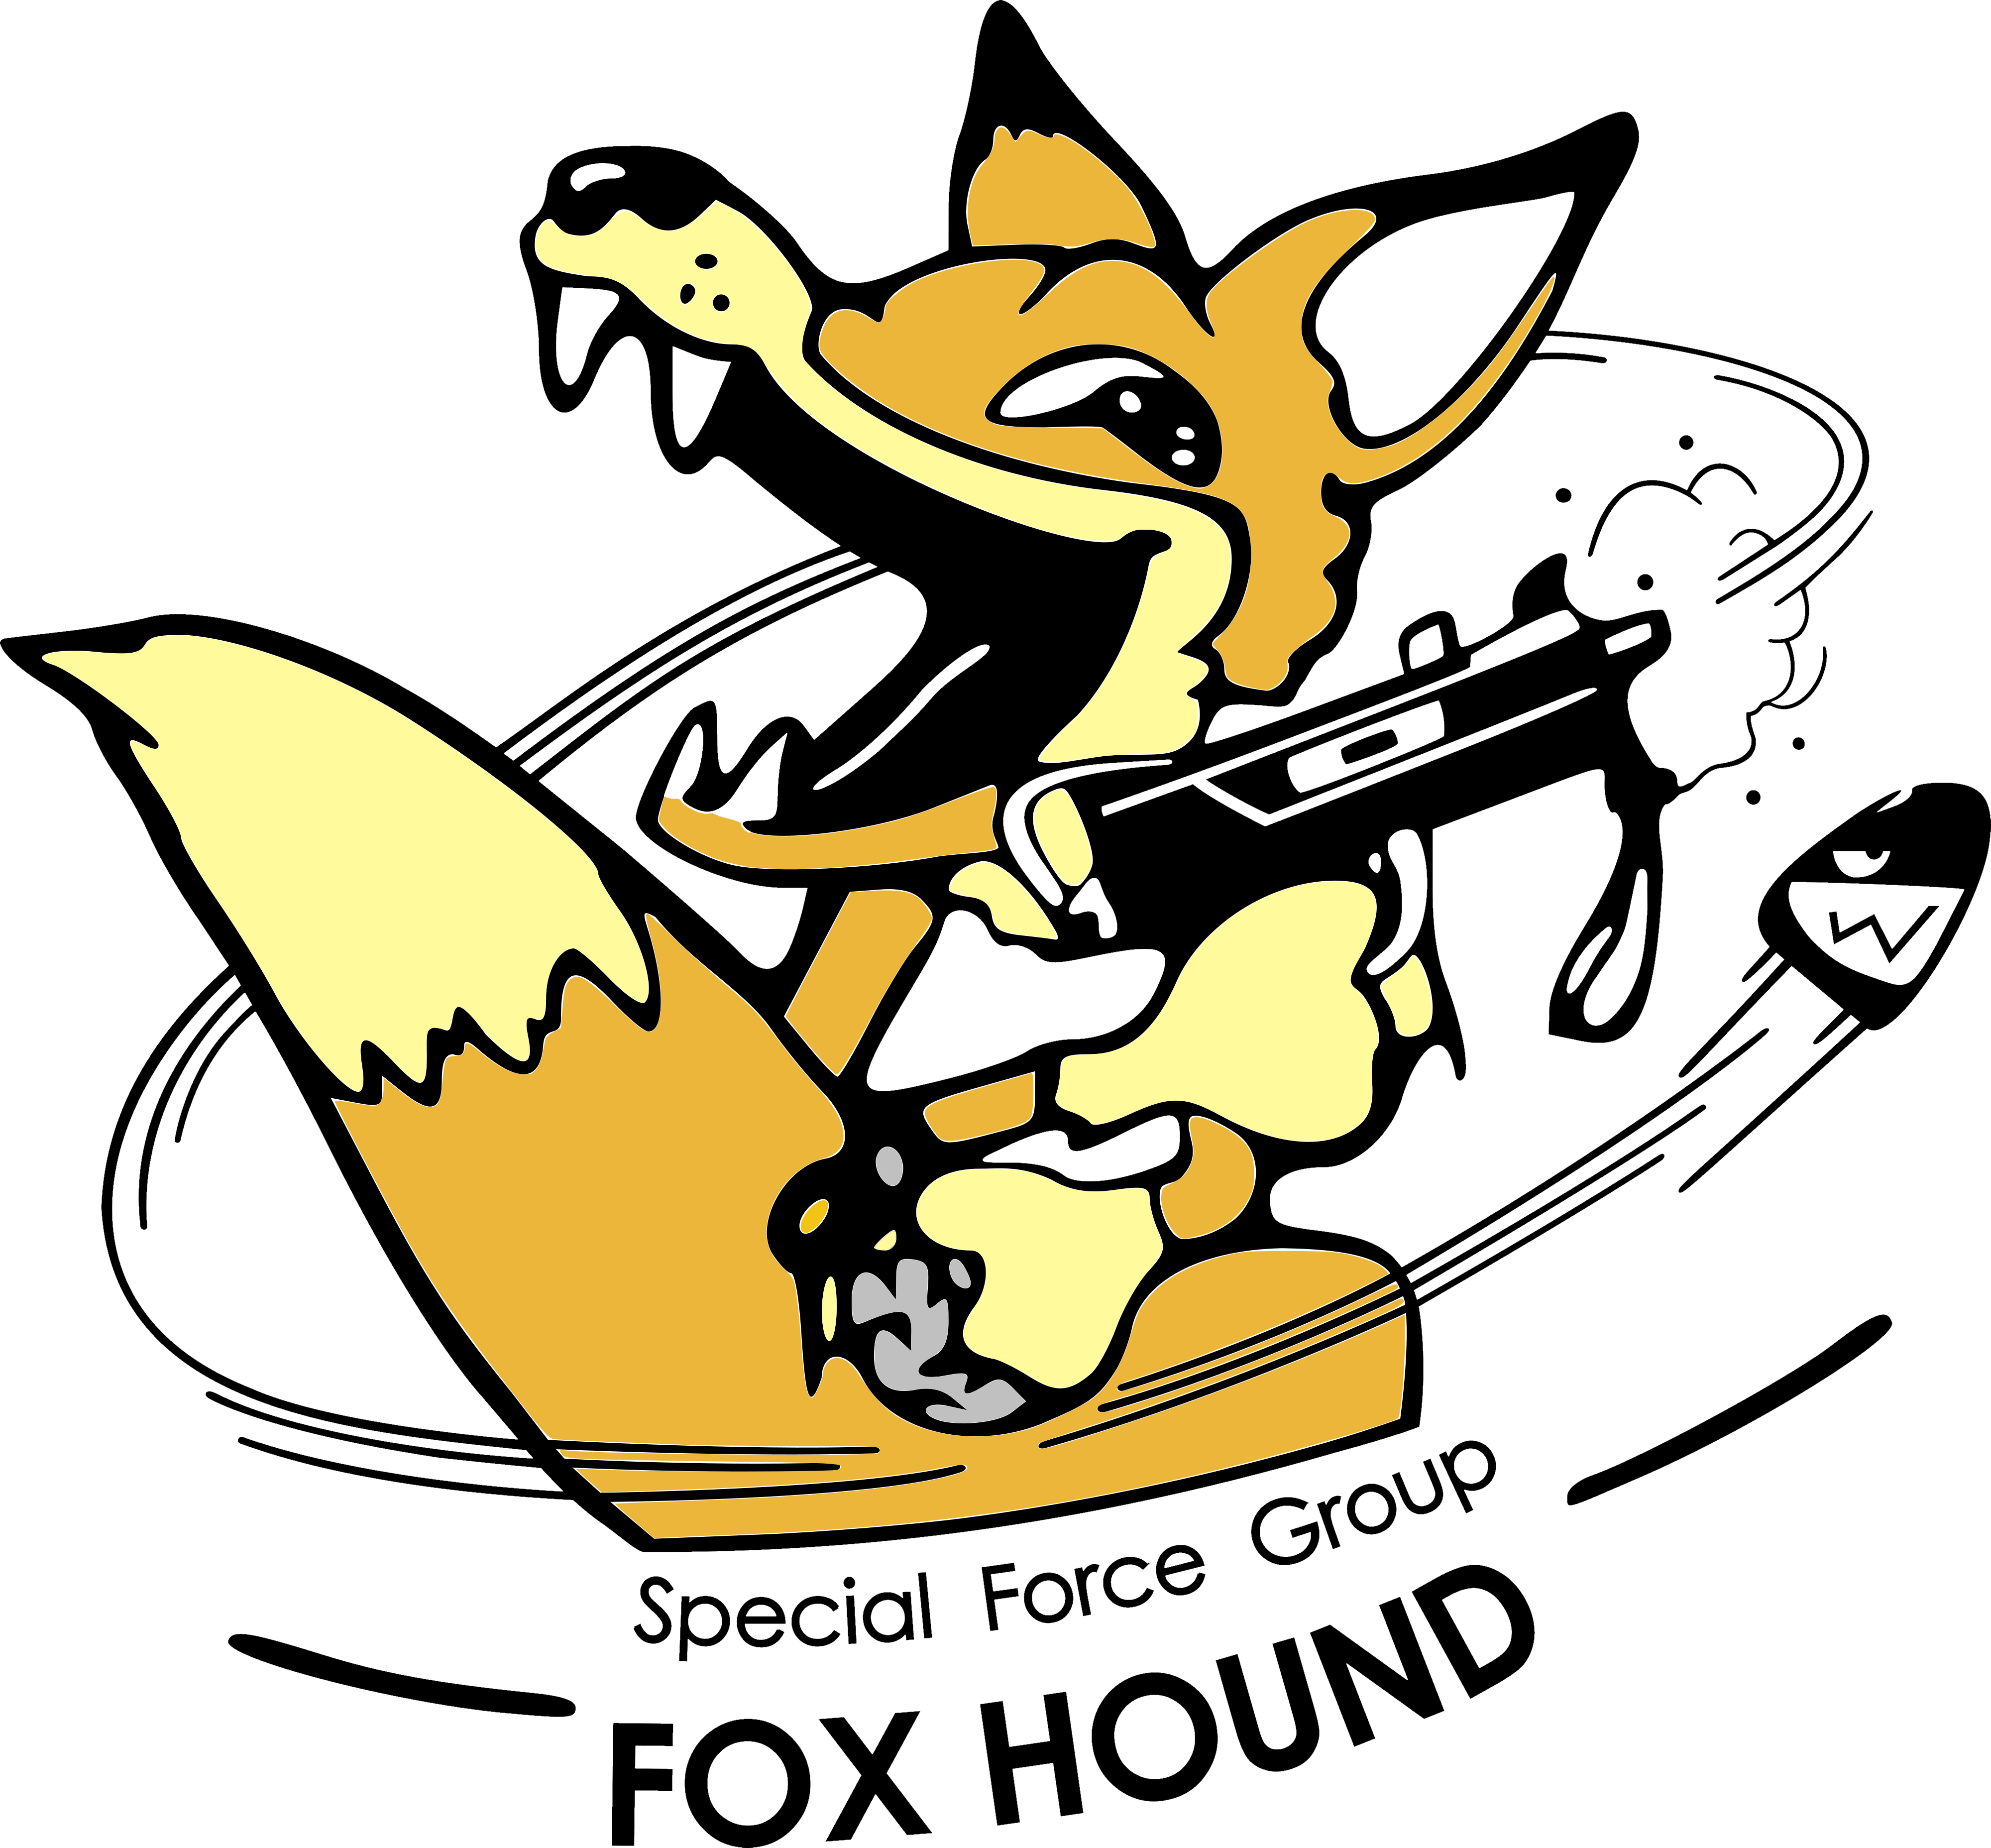 Download Within Created A Vector For The Old 90s Foxhound Logo Enjoy MetalGearSolid Mgs MGSV MetalGear Konami Cosplay PS4 Game MGSVTPP